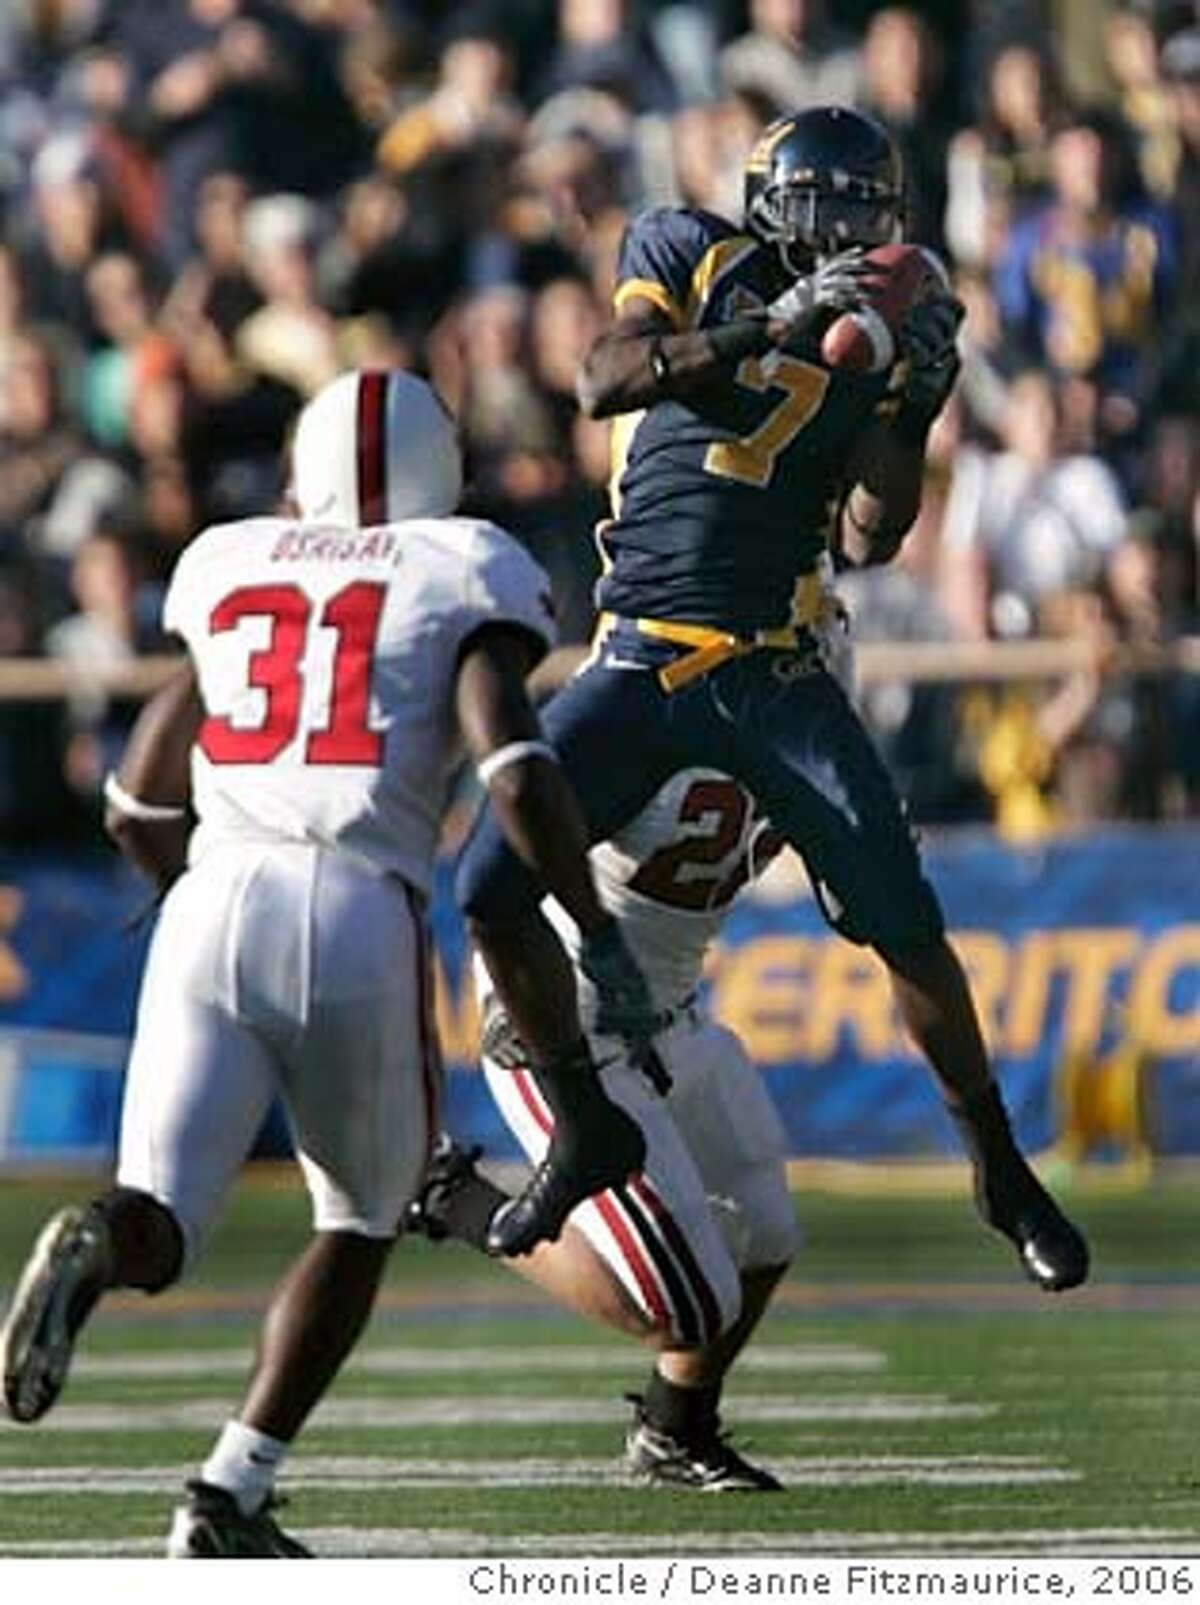 """biggame_0958_df.jpg Lavelle Hawkins makes a catch and runs for yardage. The California Golden Bears play the Stanford Cardinal at Memorial Stadium in the annual """"Big Game"""". Photographed in Berkeley on 12/2/06. (Deanne Fitzmaurice/ The Chronicle) Mandatory credit for photographer and San Francisco Chronicle. No Sales/Magazines out."""